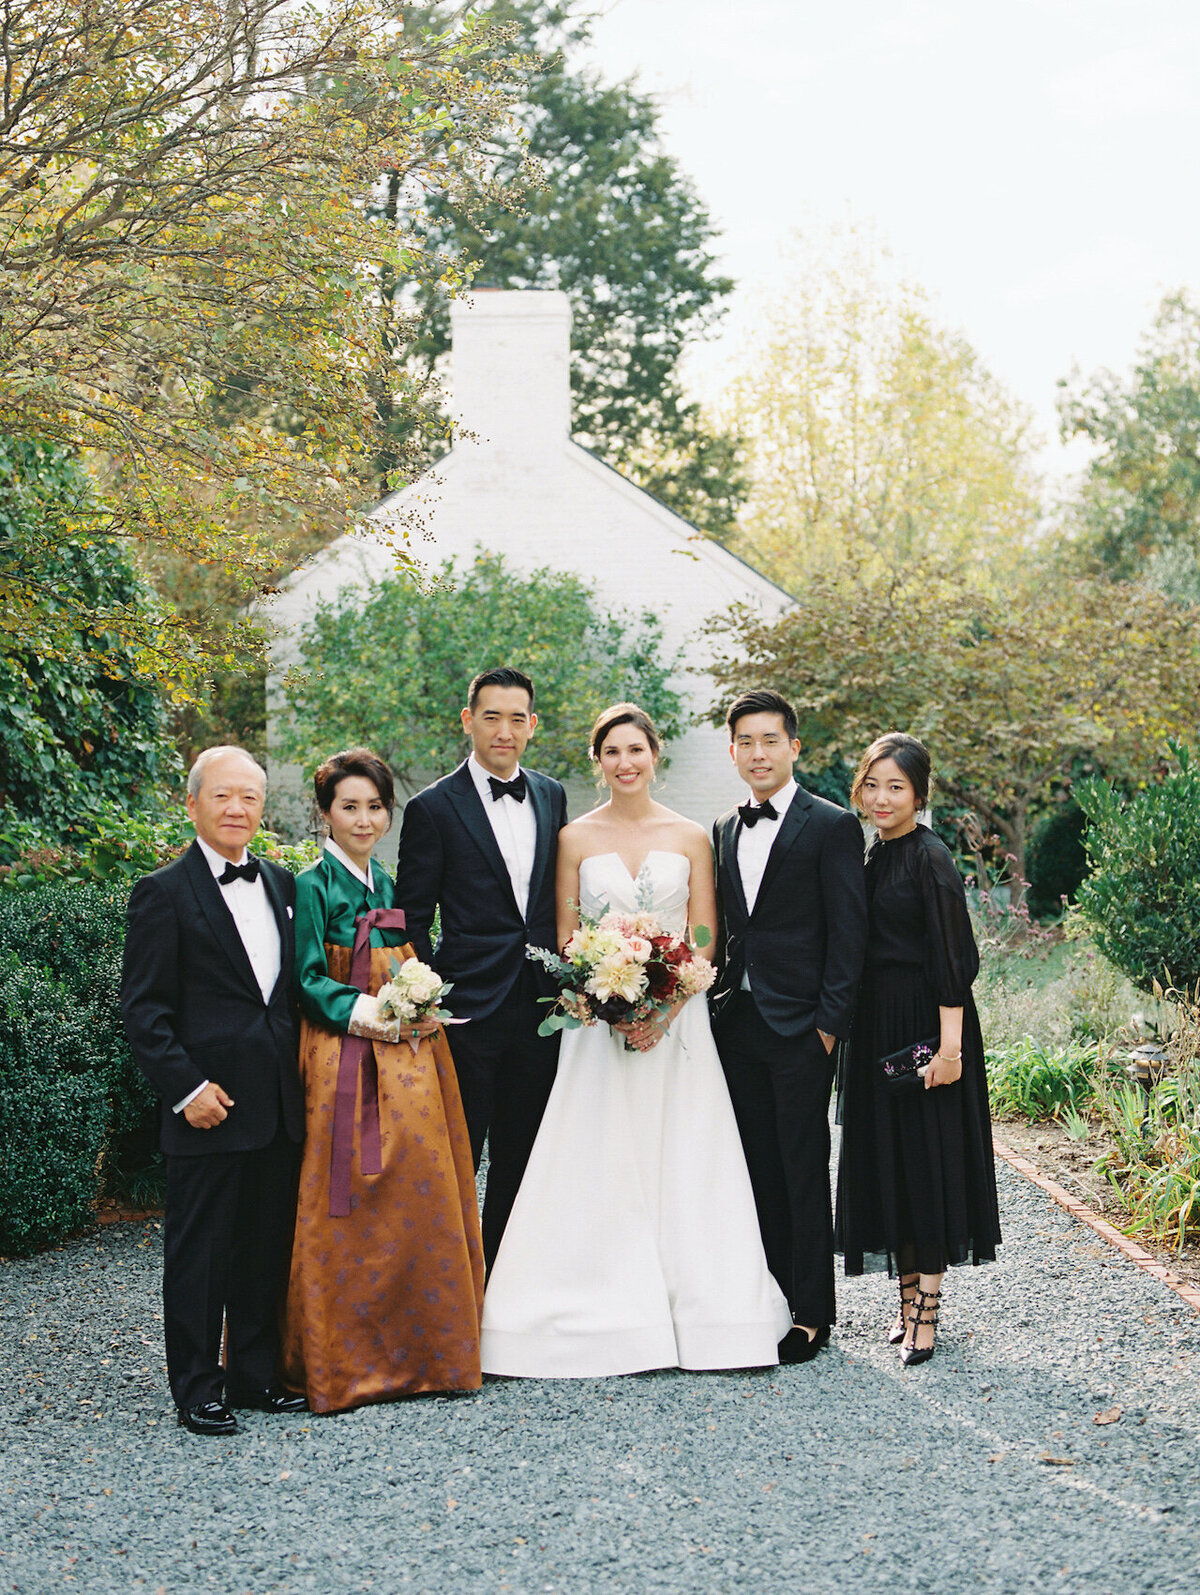 Outdoor Family Photos by Washington DC Wedding Photographer Robert Aveau for © Bonnie Sen Photography